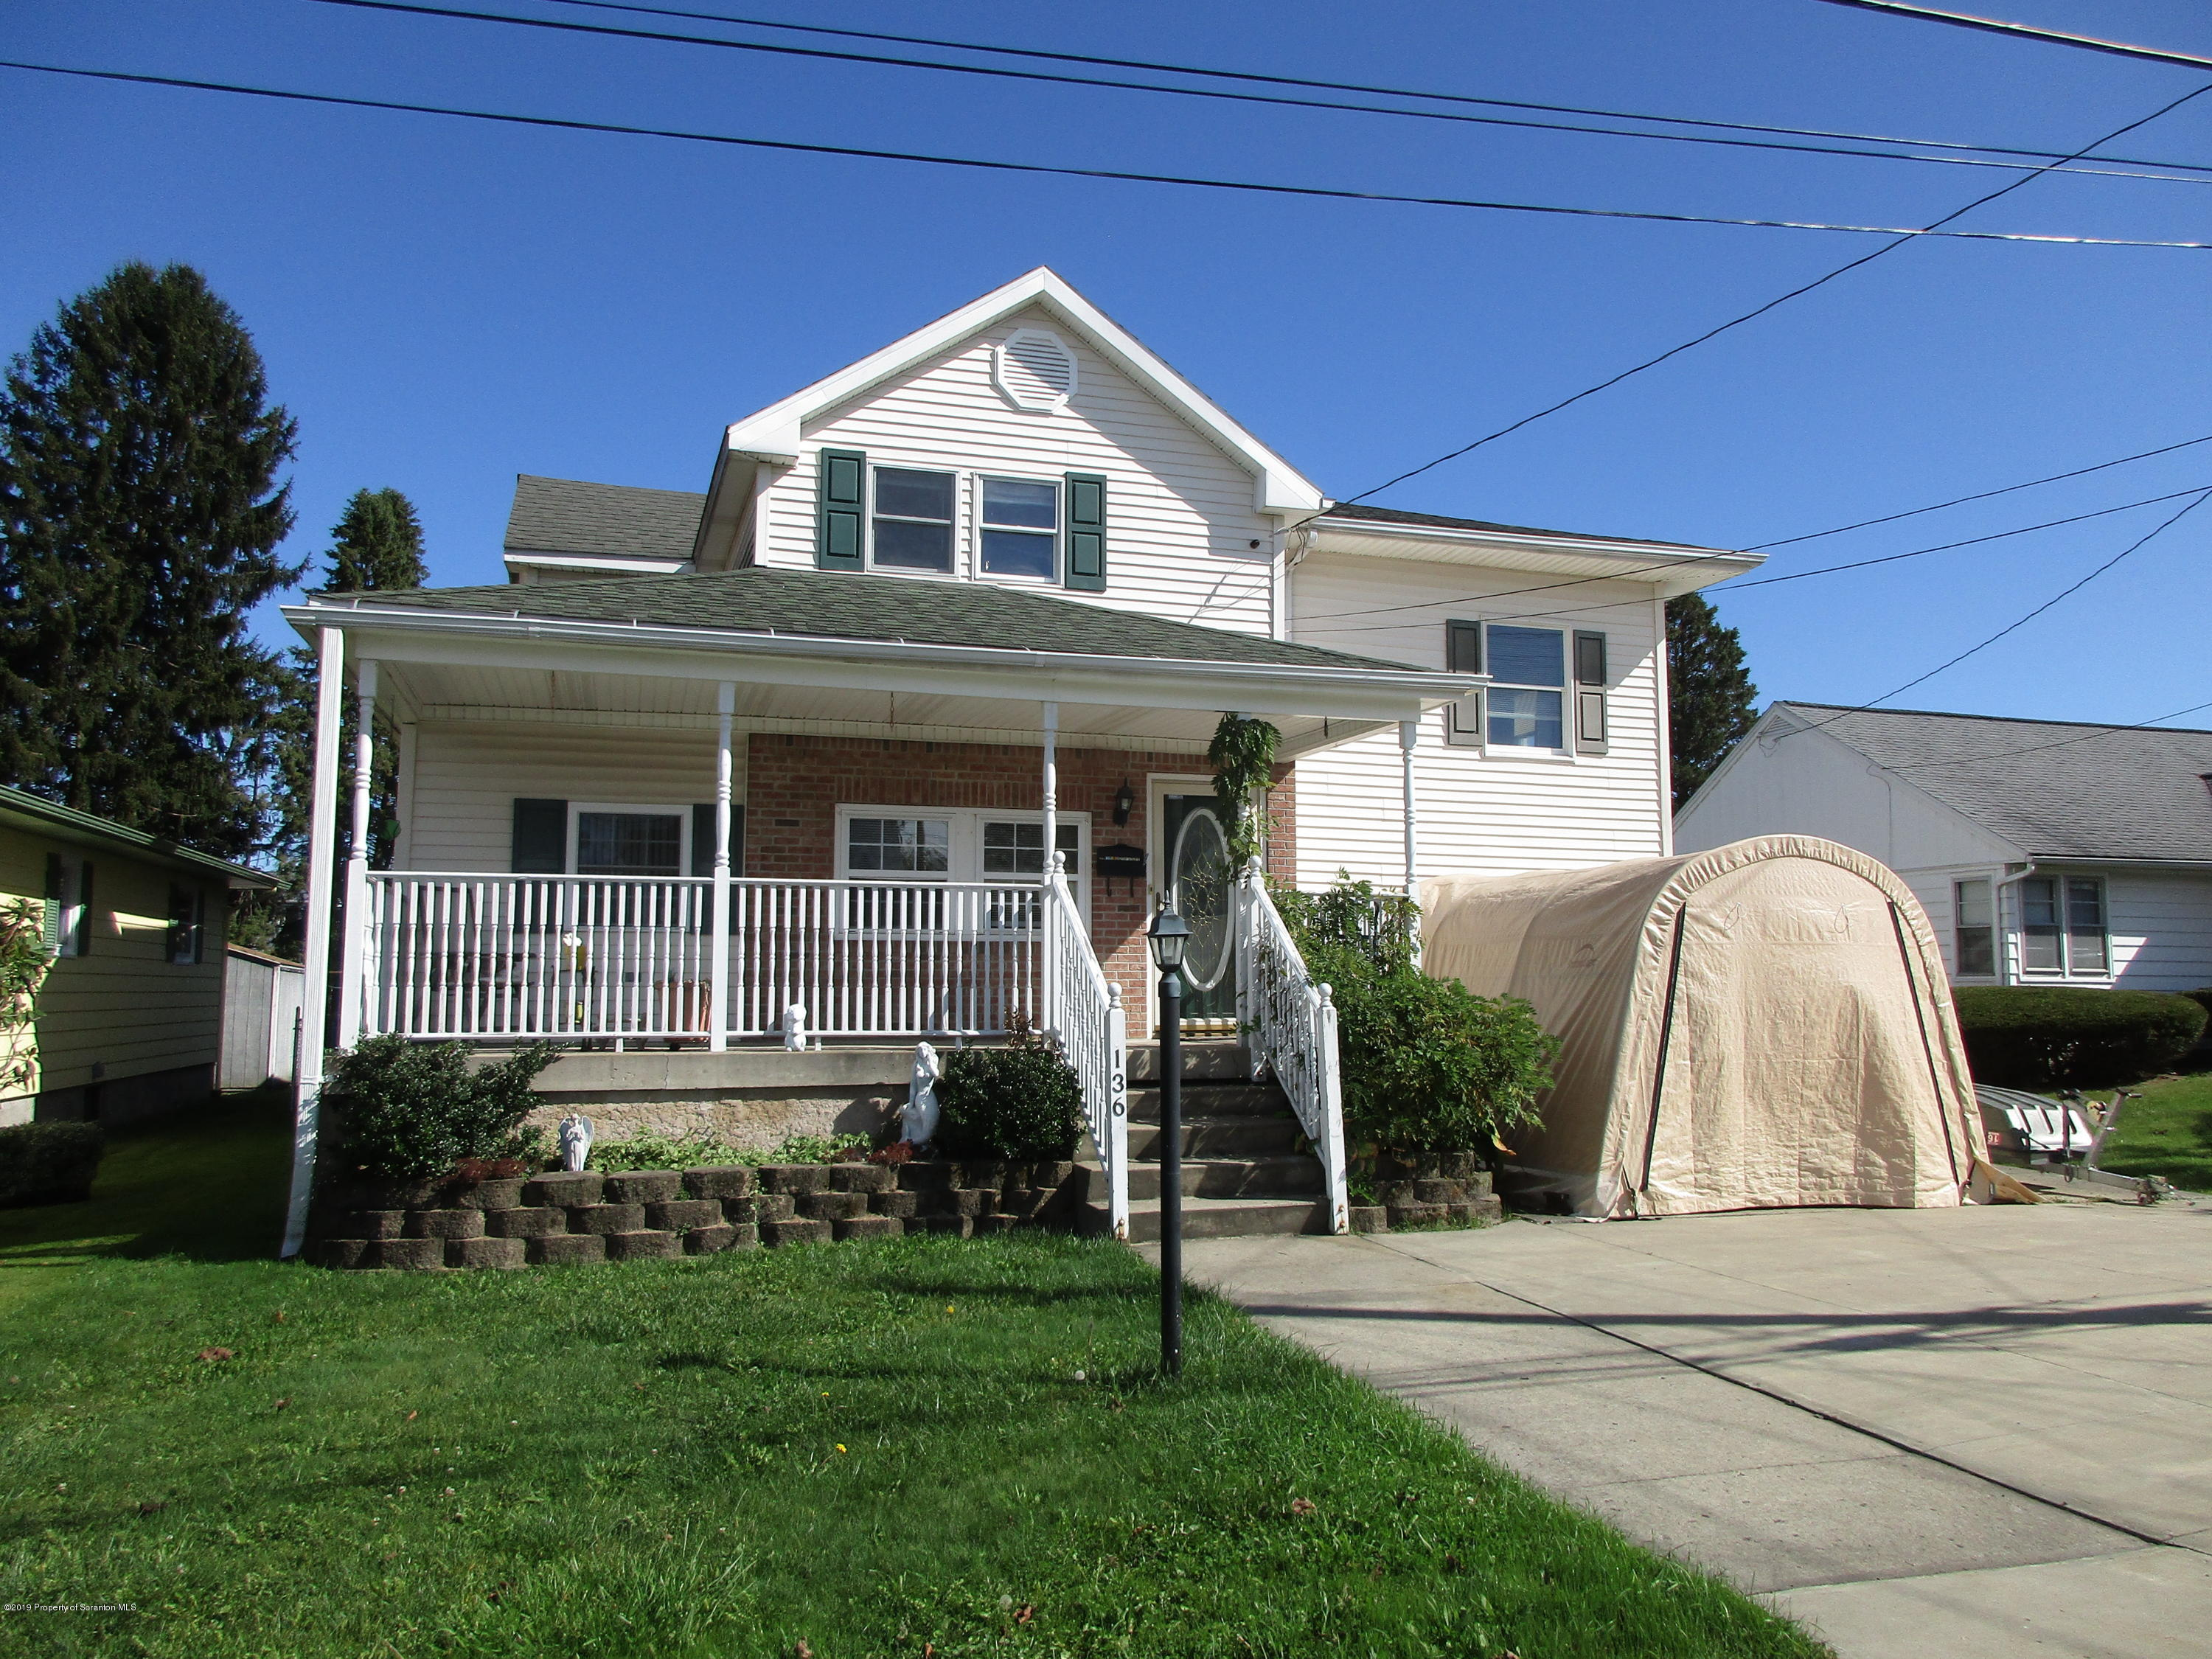 136 East St, Eynon, Pennsylvania 18403, 4 Bedrooms Bedrooms, 8 Rooms Rooms,3 BathroomsBathrooms,Single Family,For Sale,East,19-5070